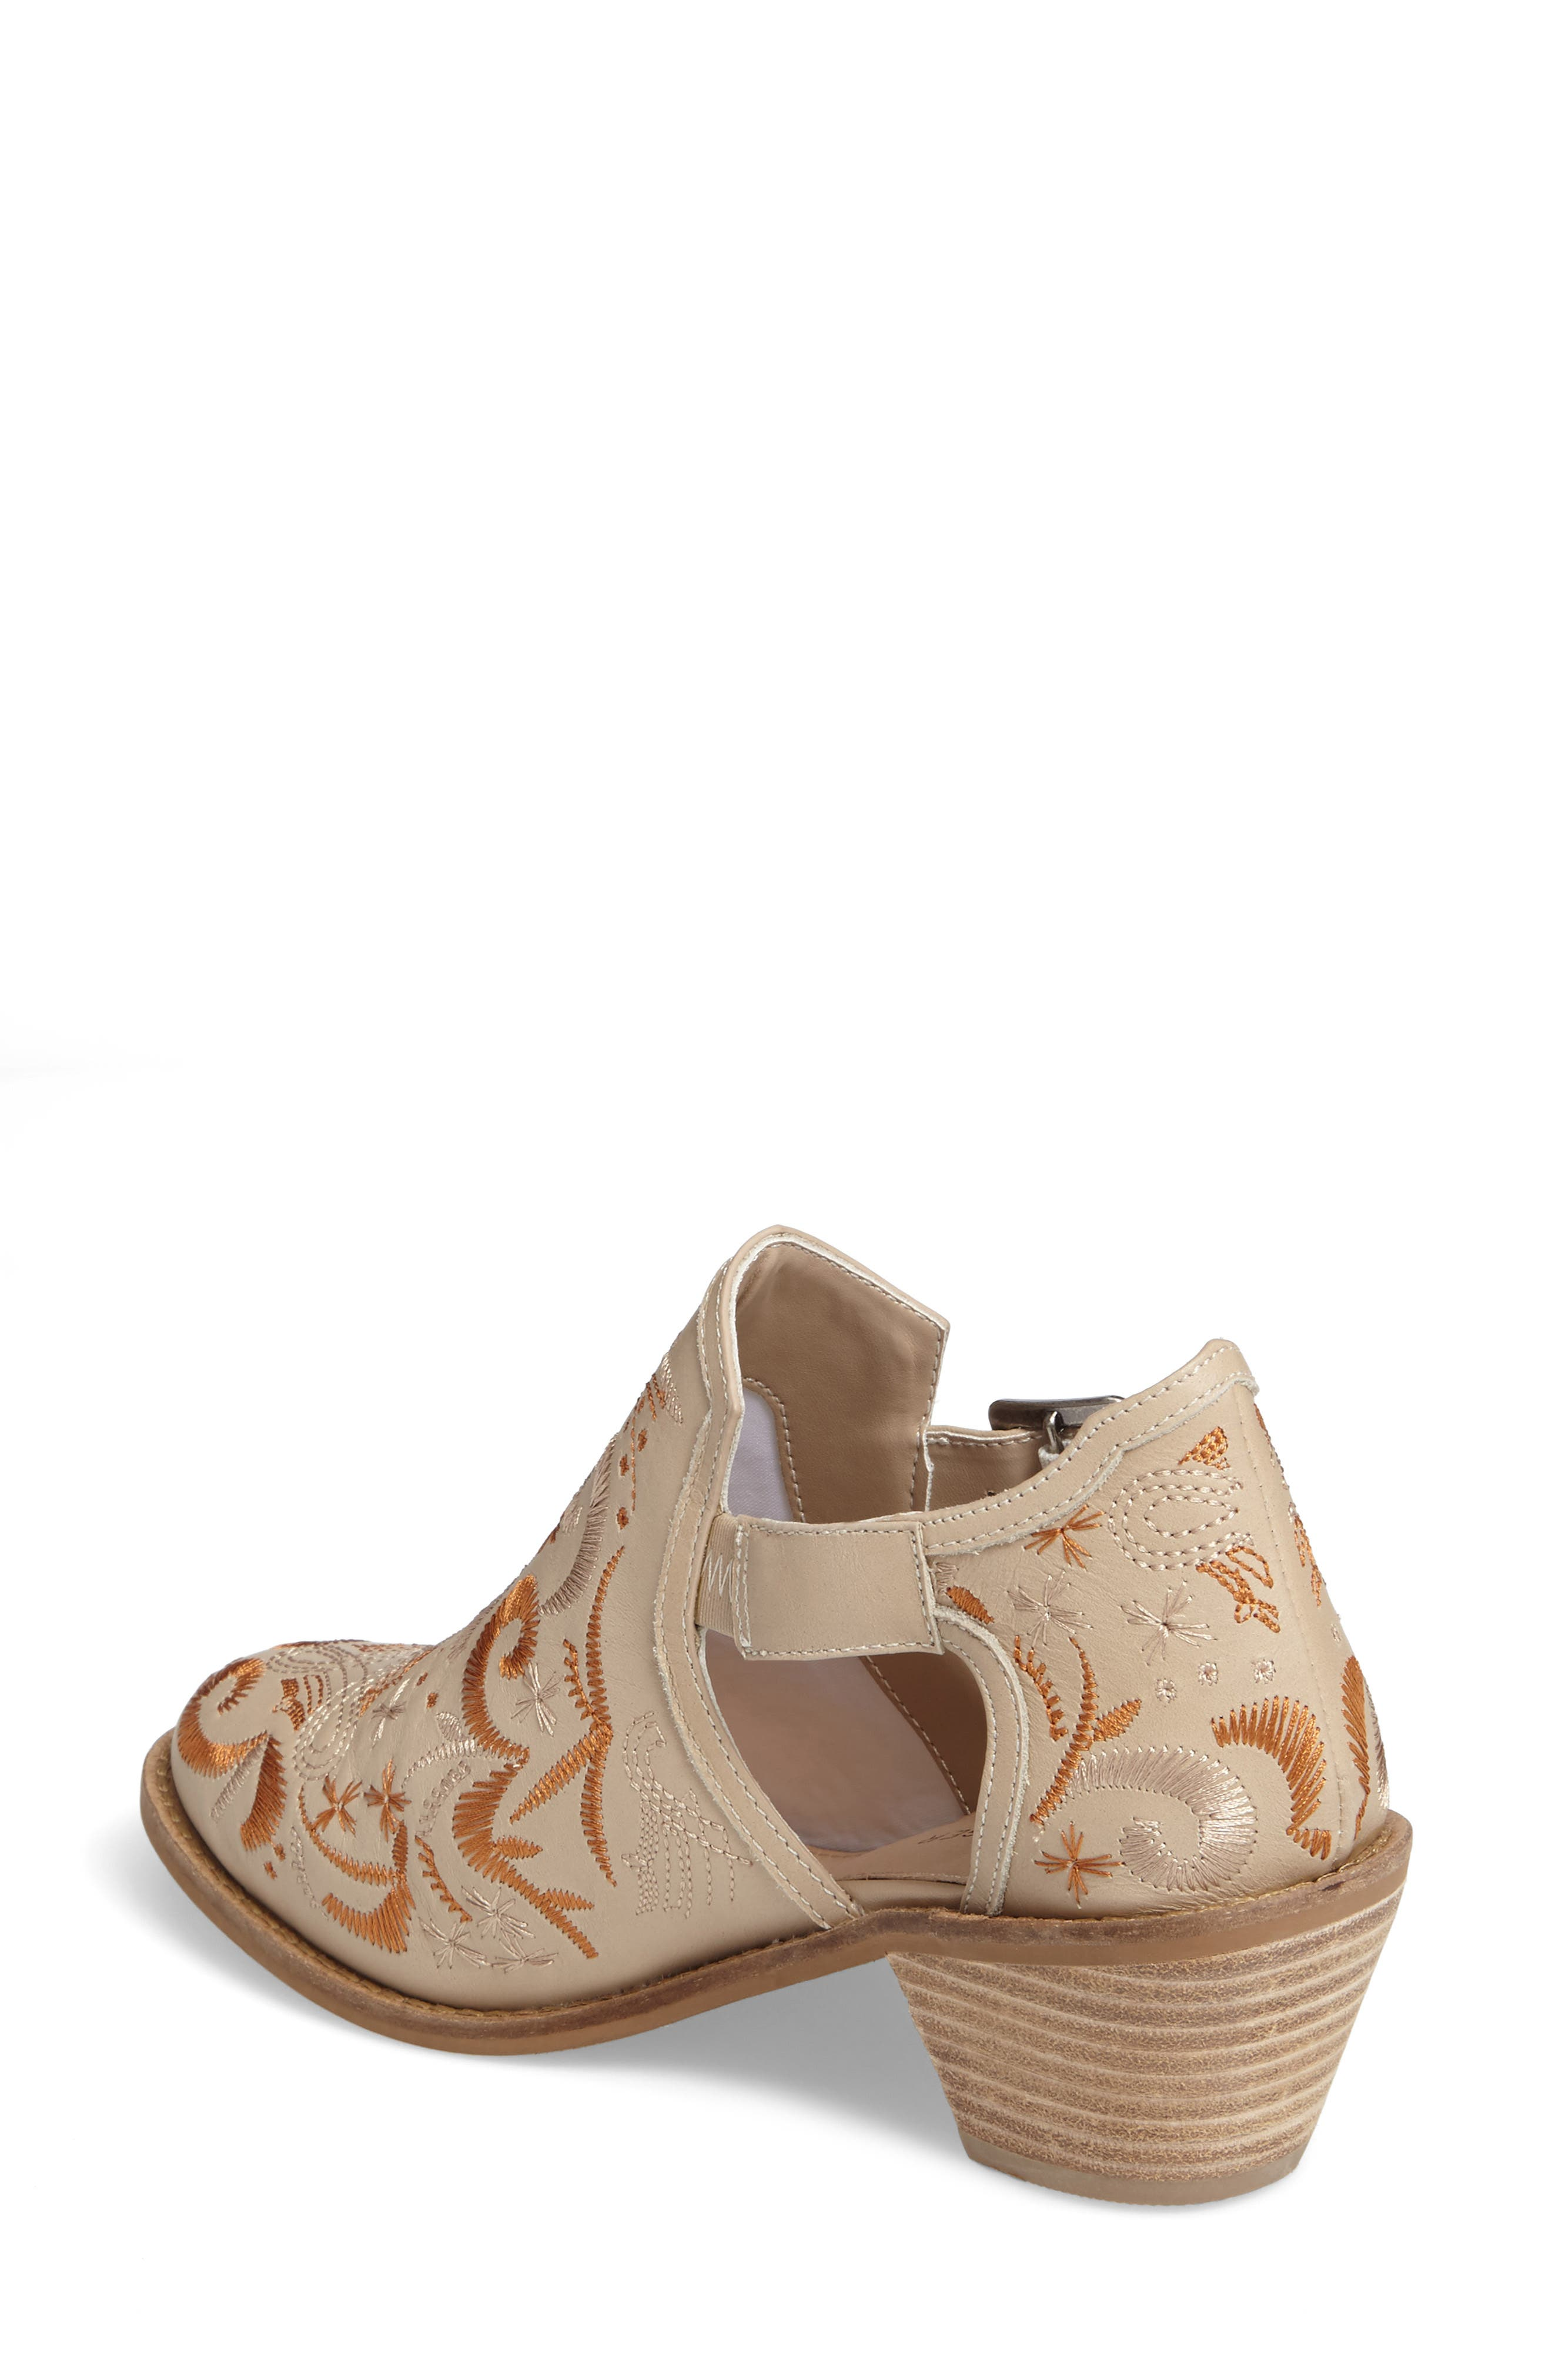 Kline Embroidered Bootie,                             Alternate thumbnail 2, color,                             Wheat Leather